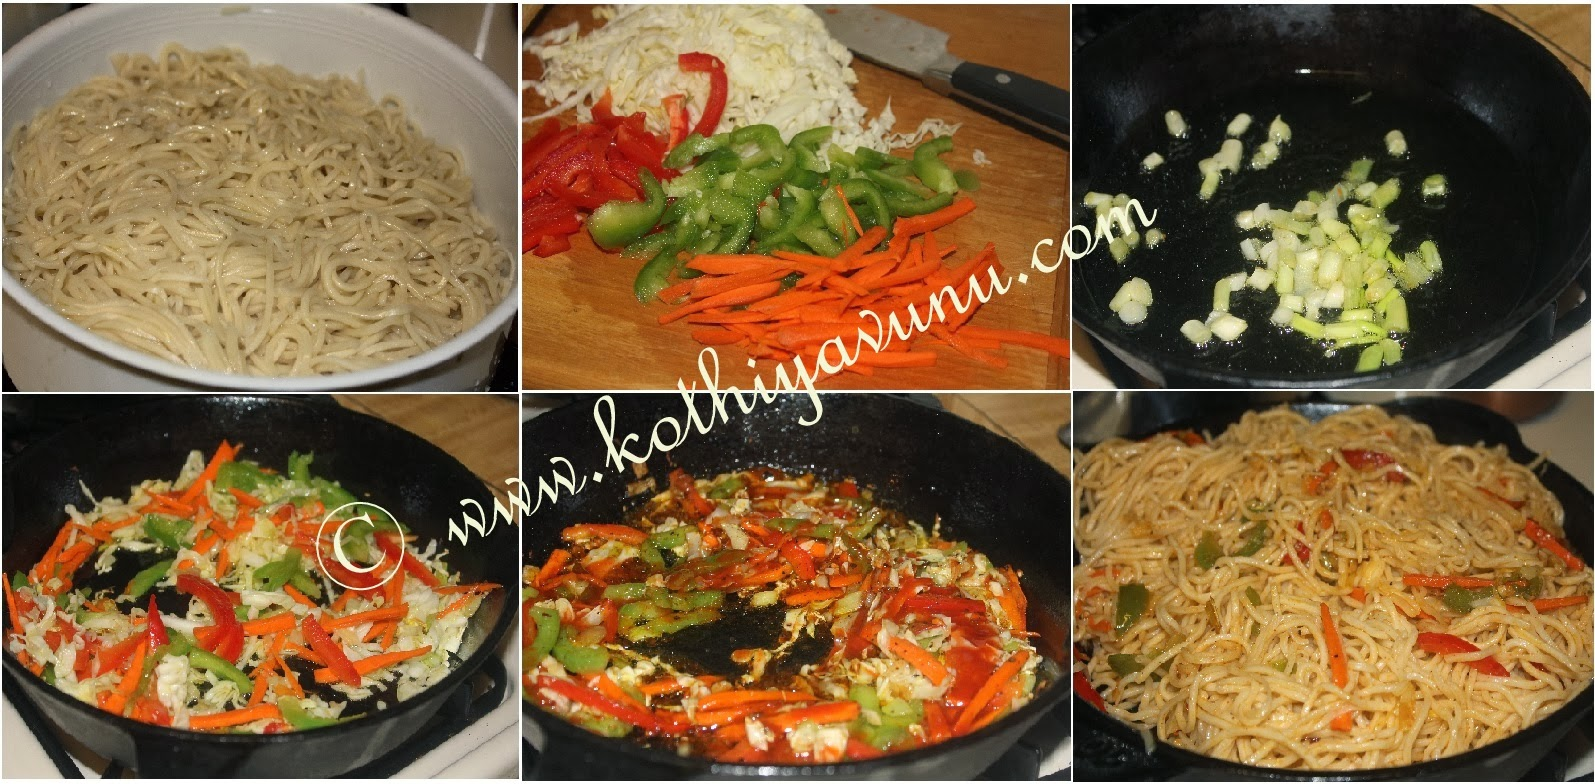 Vegetable Hakka Noodles Chowmein Recipe Restaurant Style